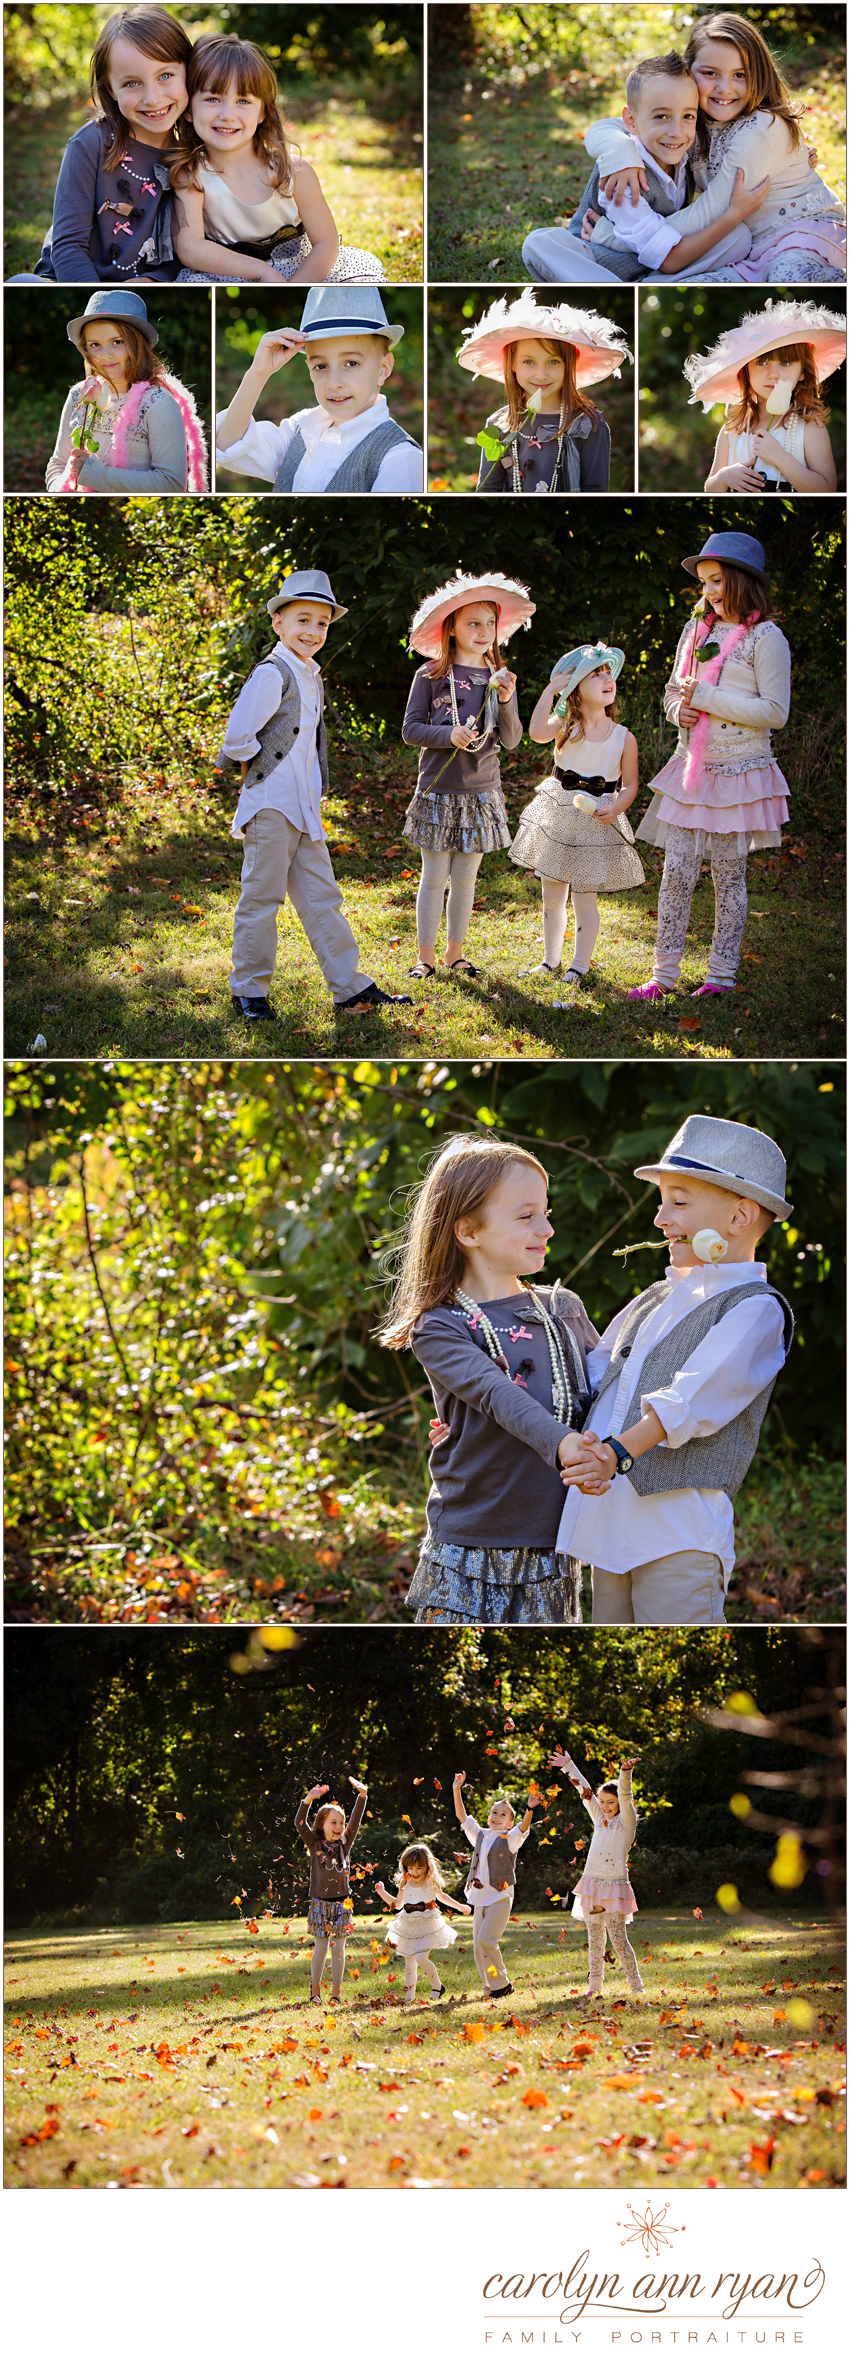 Extended Family Portraits by North Carolina Family Photographer Carolyn Ann Ryan